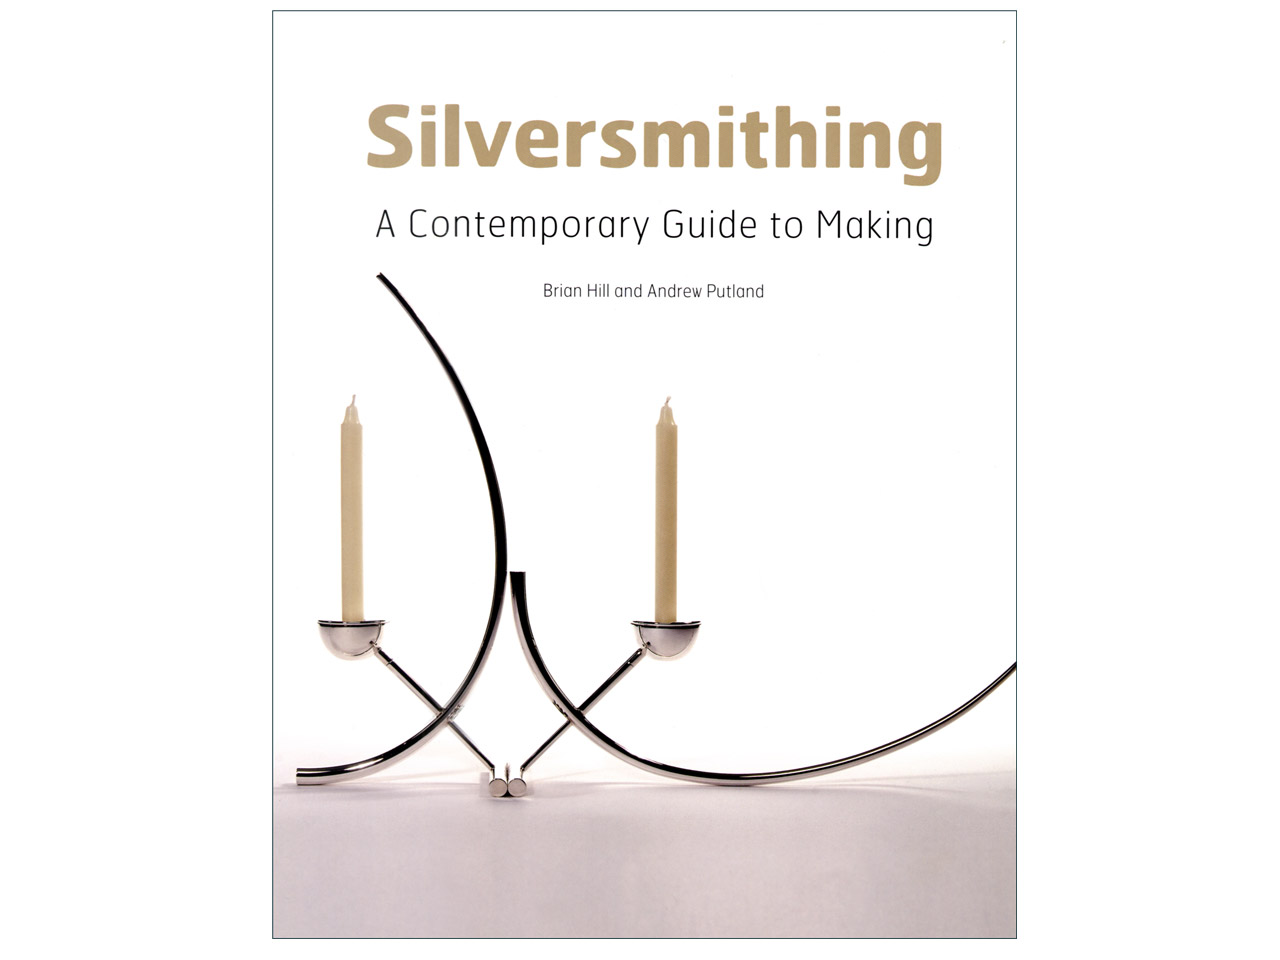 Silversmithing A Contemporary Guide To Making By Brian Hill And Andrew  Putland